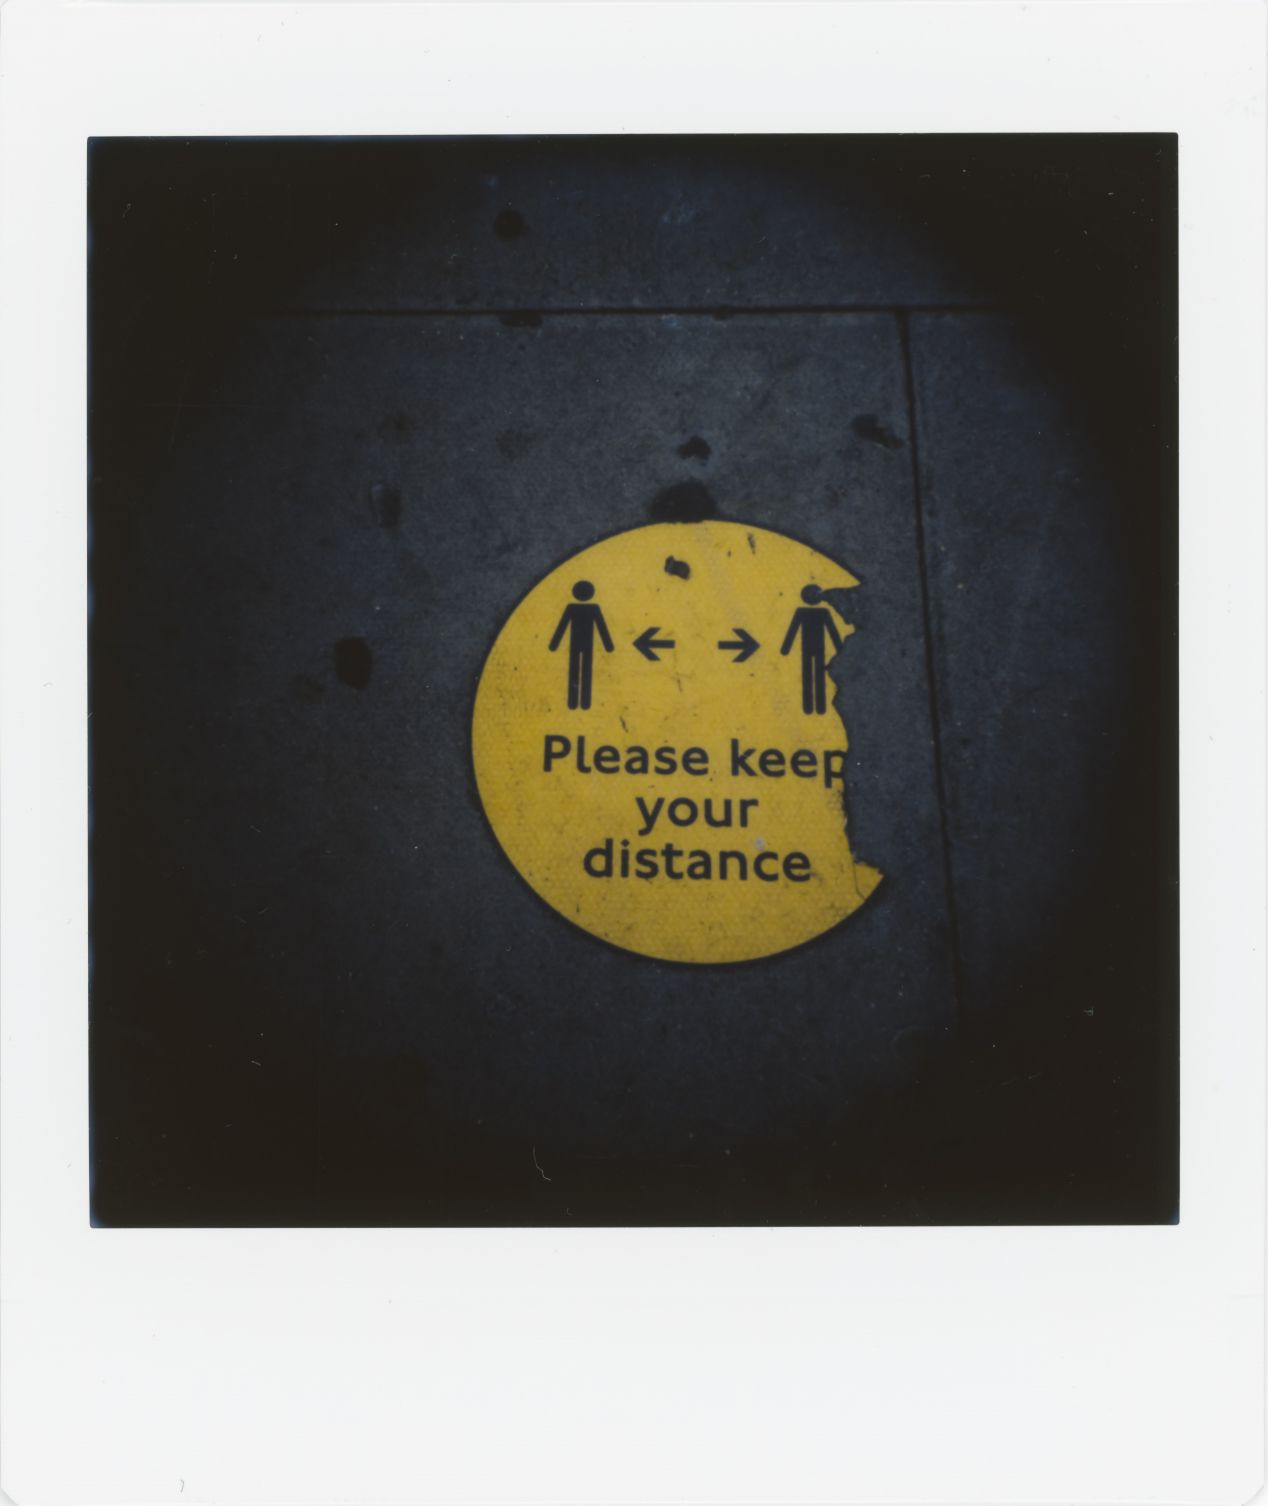 Photograph 4: near a bus stop in North London. As the rule of social distancing has ended, the signage on the pavement no longer needs to be replaced and it is left to fade away and peel off.